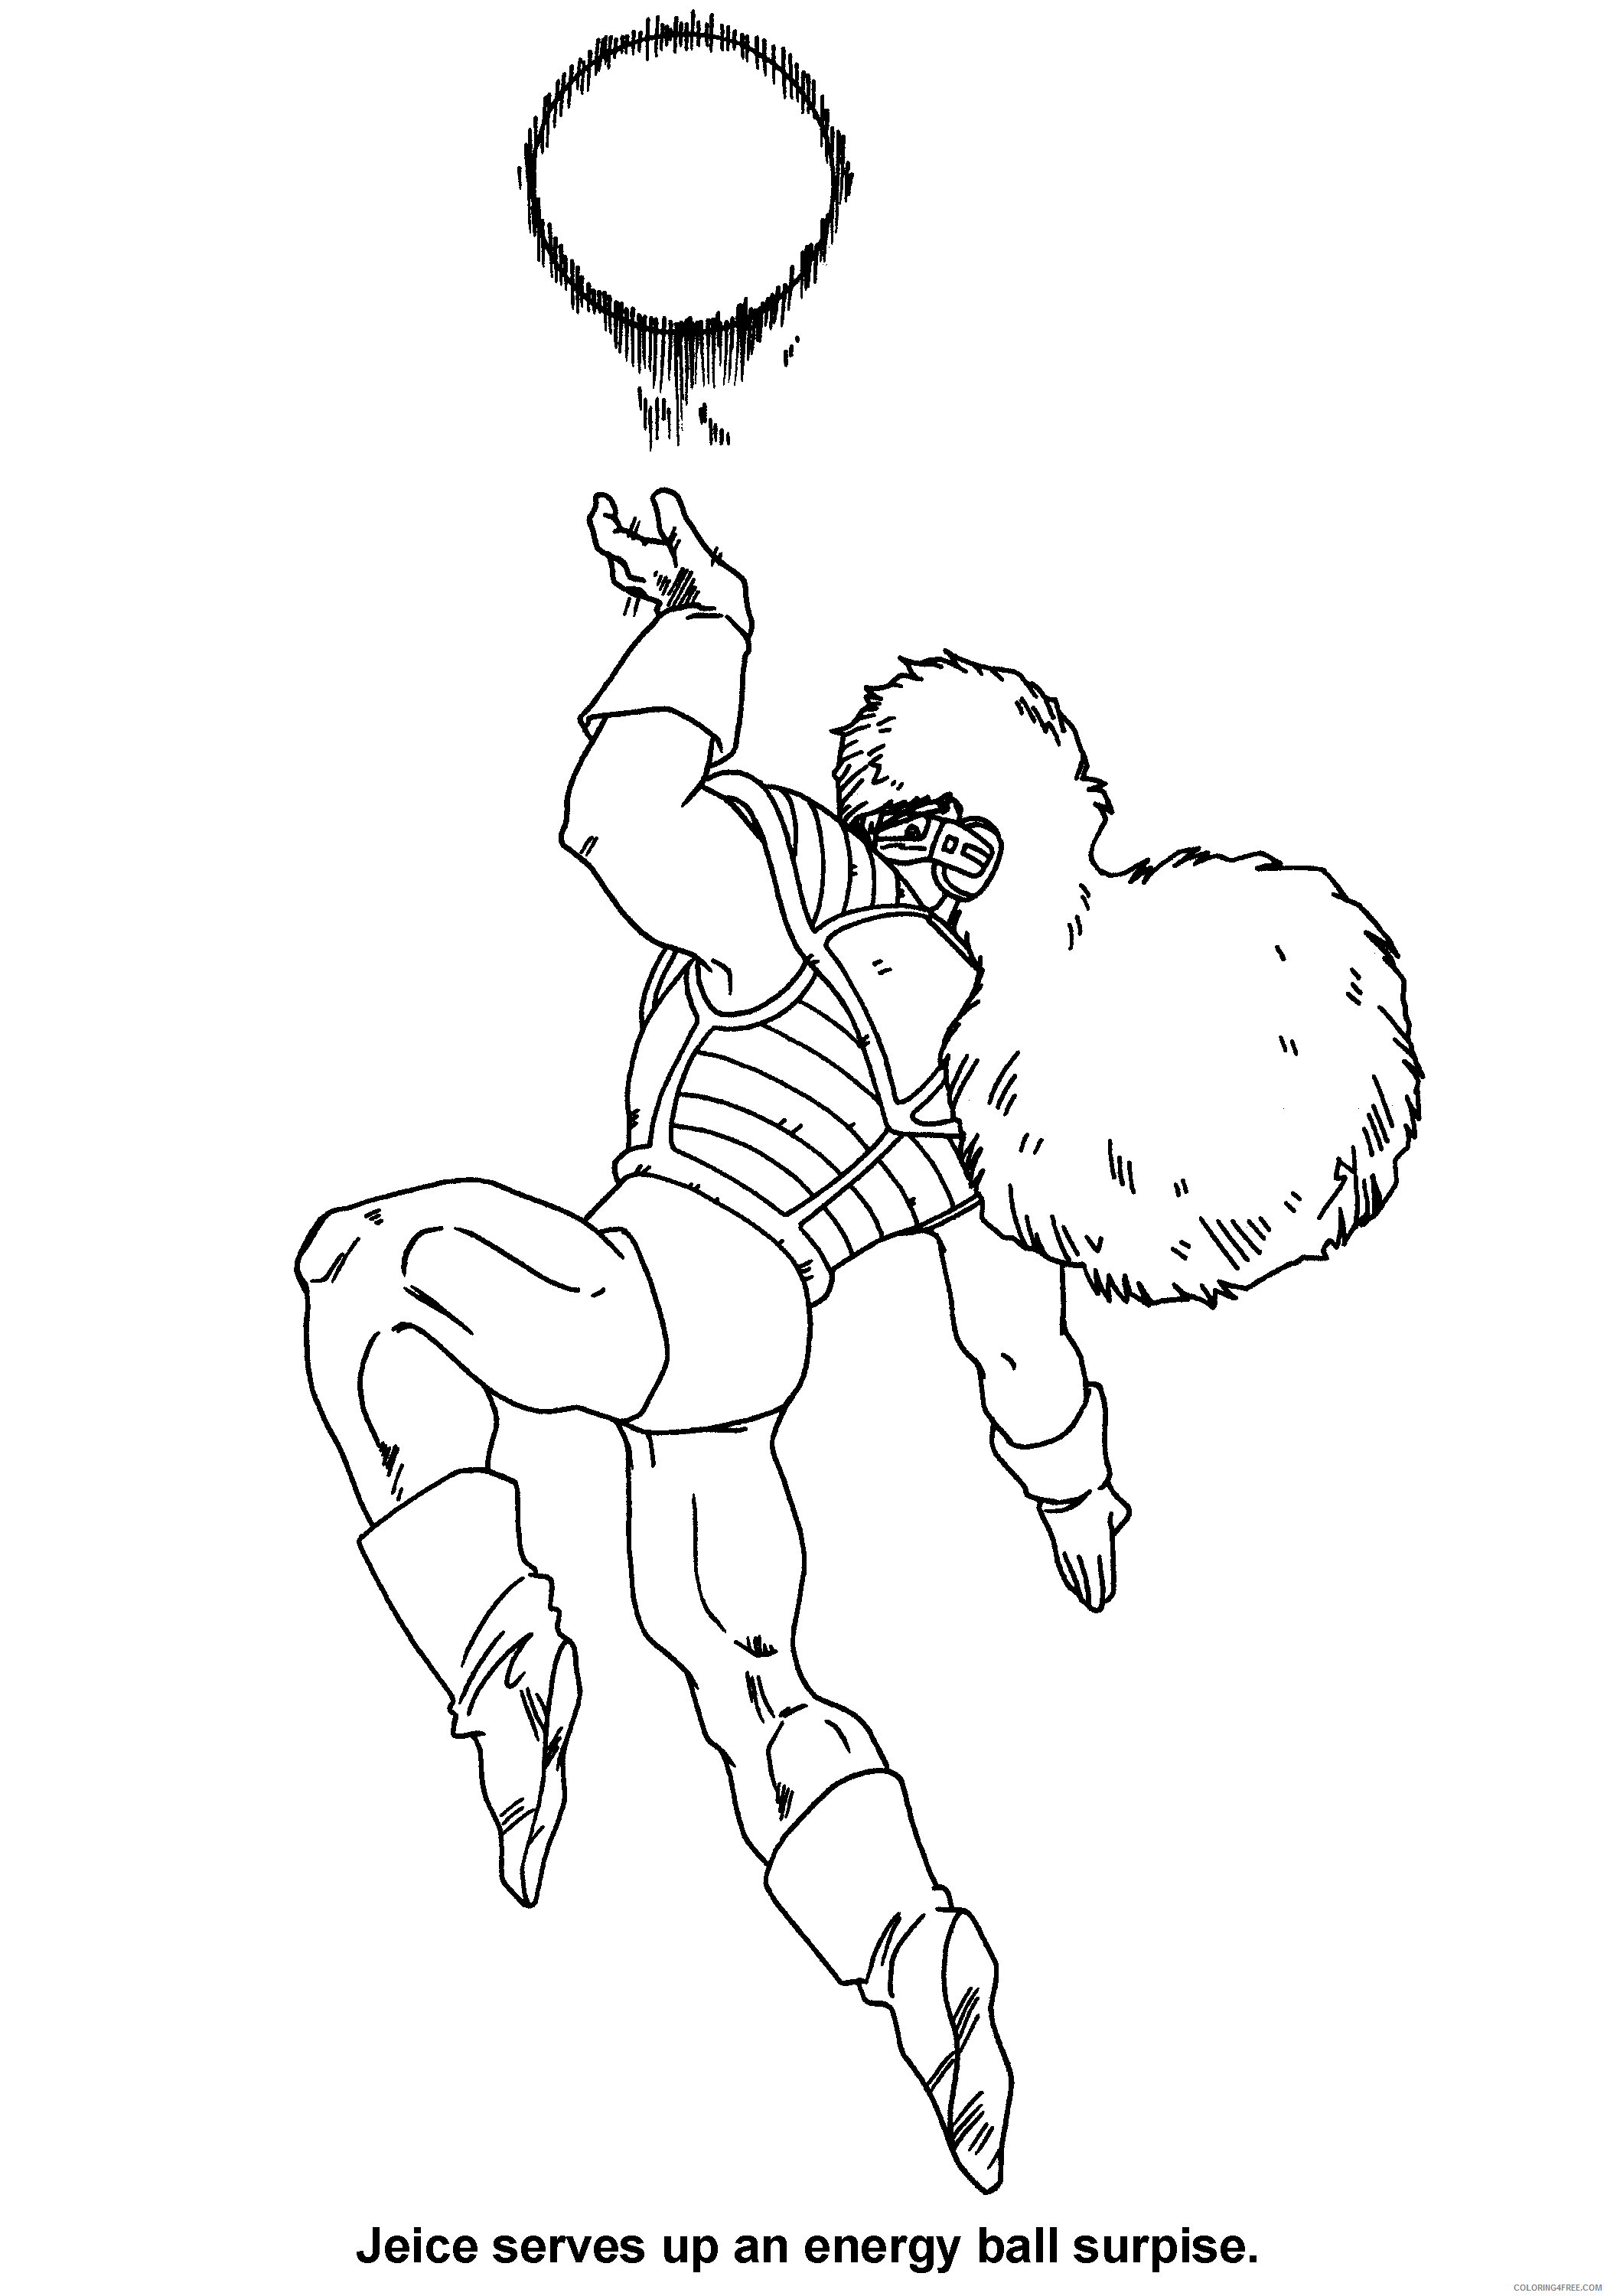 050 dragon ball z jeice serves up an energy ball surpise Printable Coloring4free